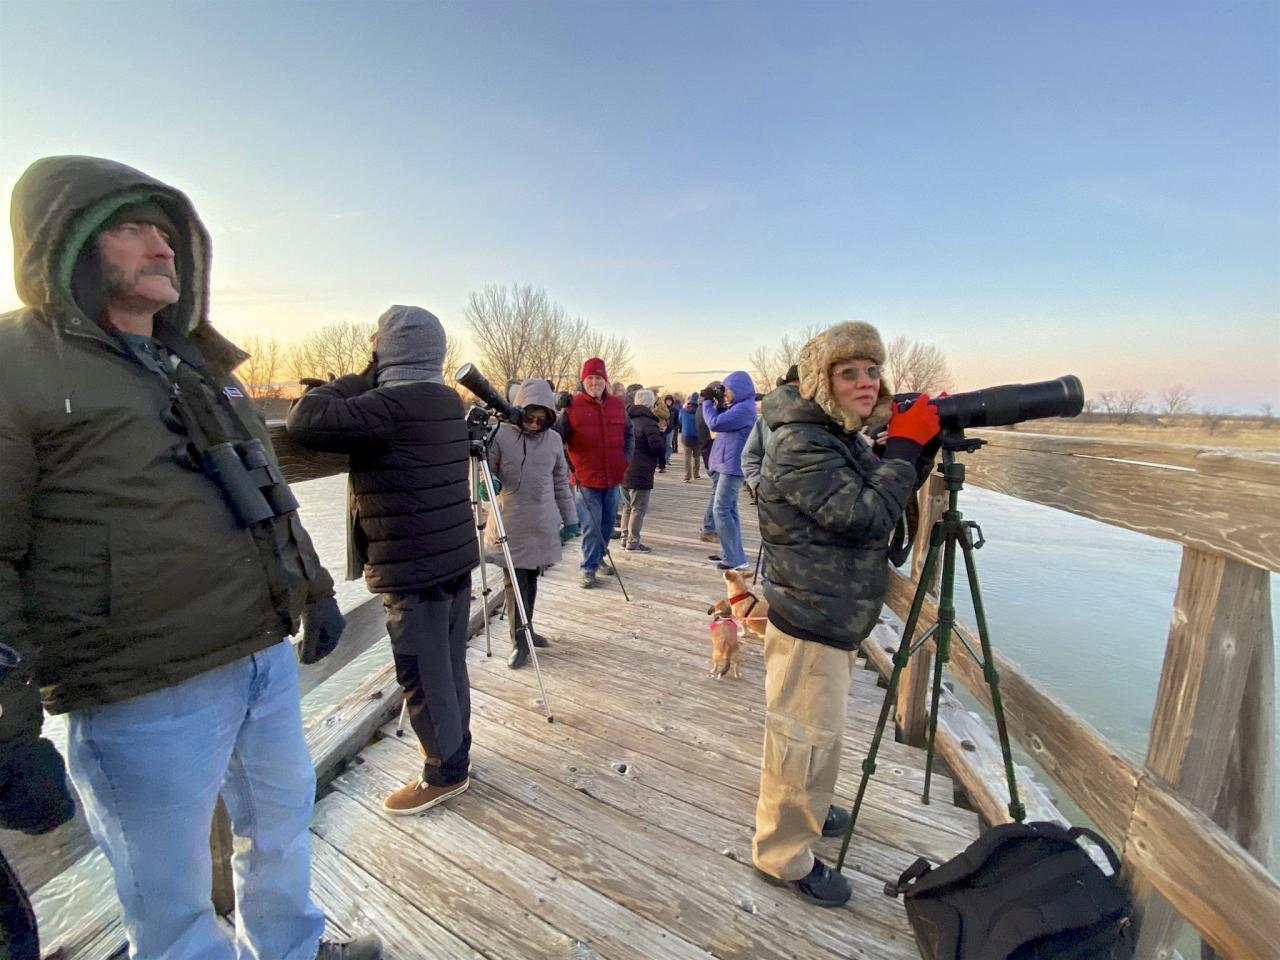 Nebraska, Platte River, Platte River Nature Tour, Sandhill Crane Nature Tour, Platte River Birding Tour, Naturalist Journeys